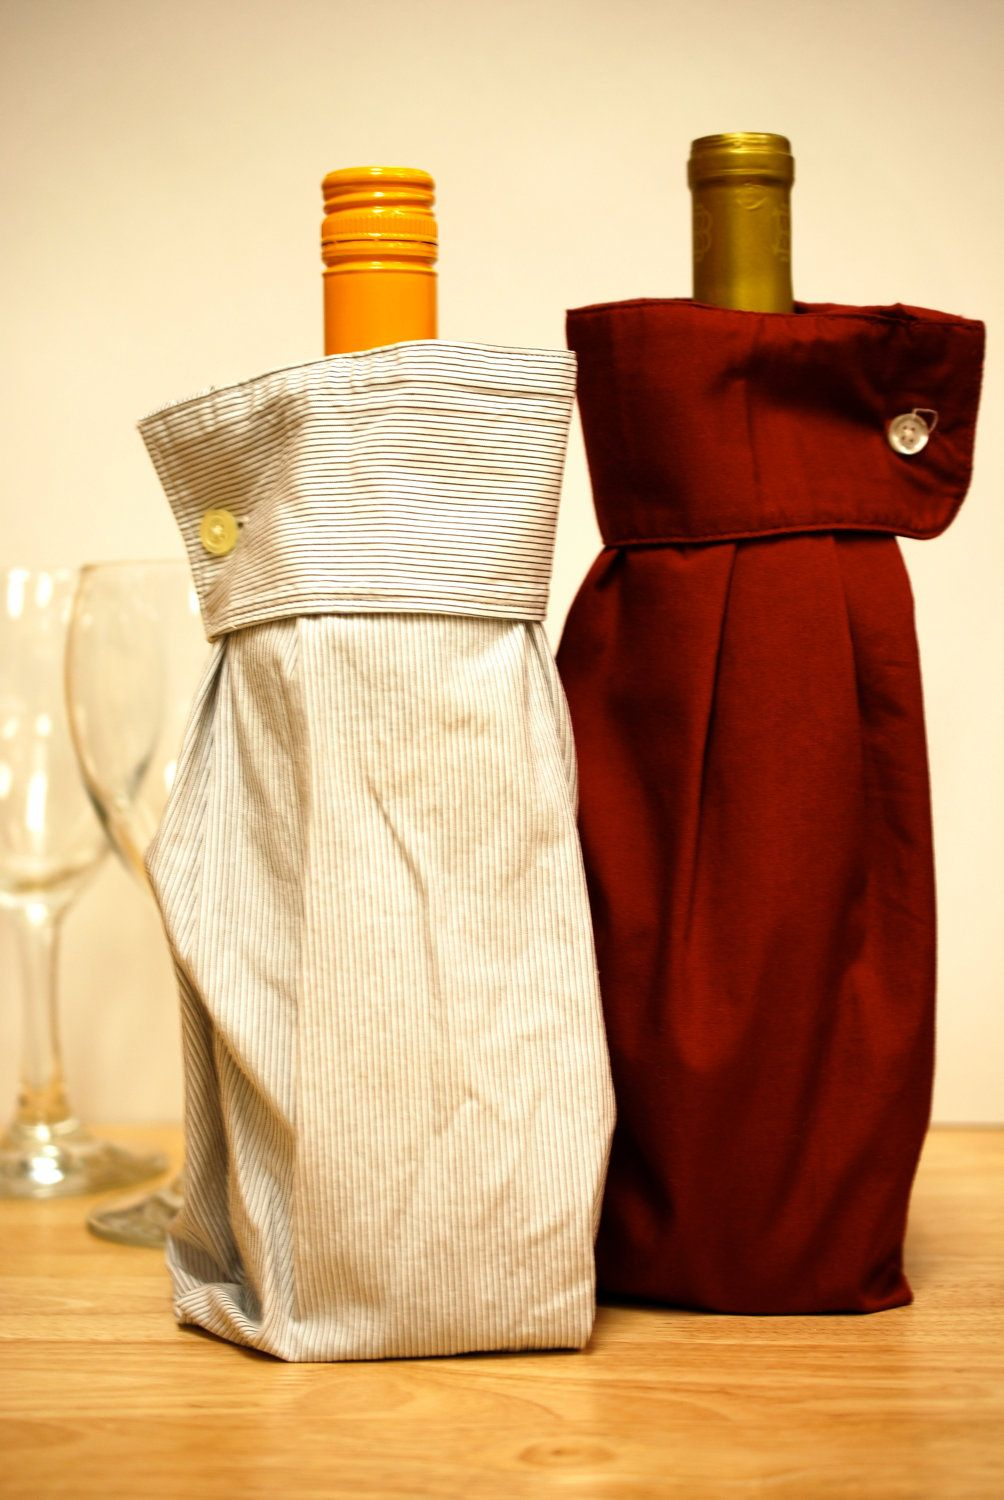 2 Upcycled Men S Dress Shirt Wine Sleeve Gift Bags Maybe Get Shirts From The Thrift Store Wine Sleeve Wine Bottle Sleeves Mens Shirt Dress